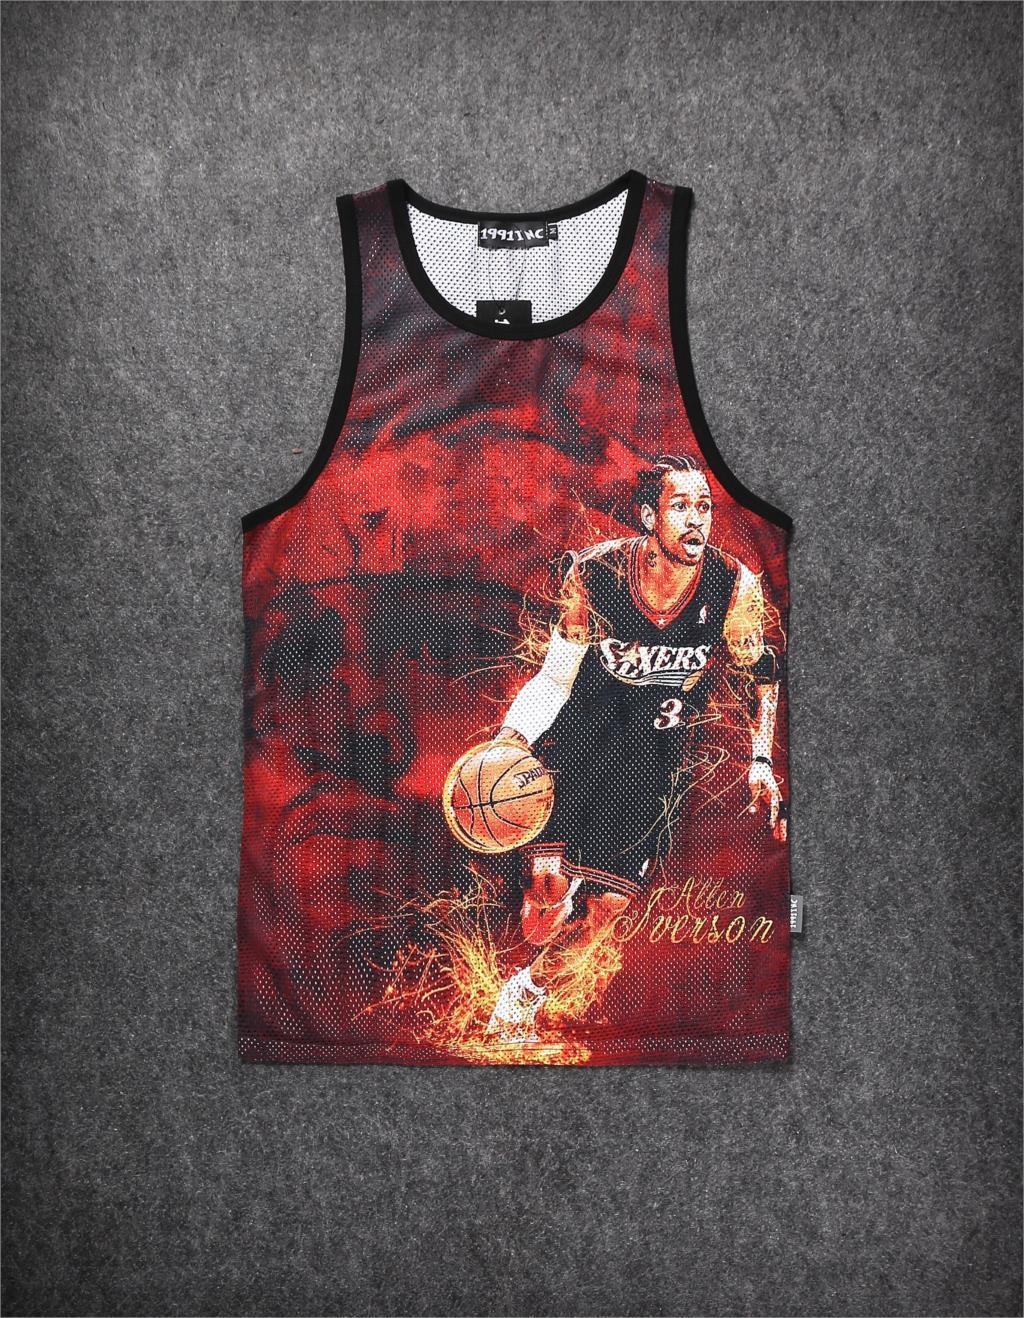 2015 Mens Sport Tank Top Vest 3D Stars Figure Print Nets Breathe basketball Shoot Sleeveless Flame background Tanks Tops - O M G HIP HOP STREET WEAR ONLINE STORE store